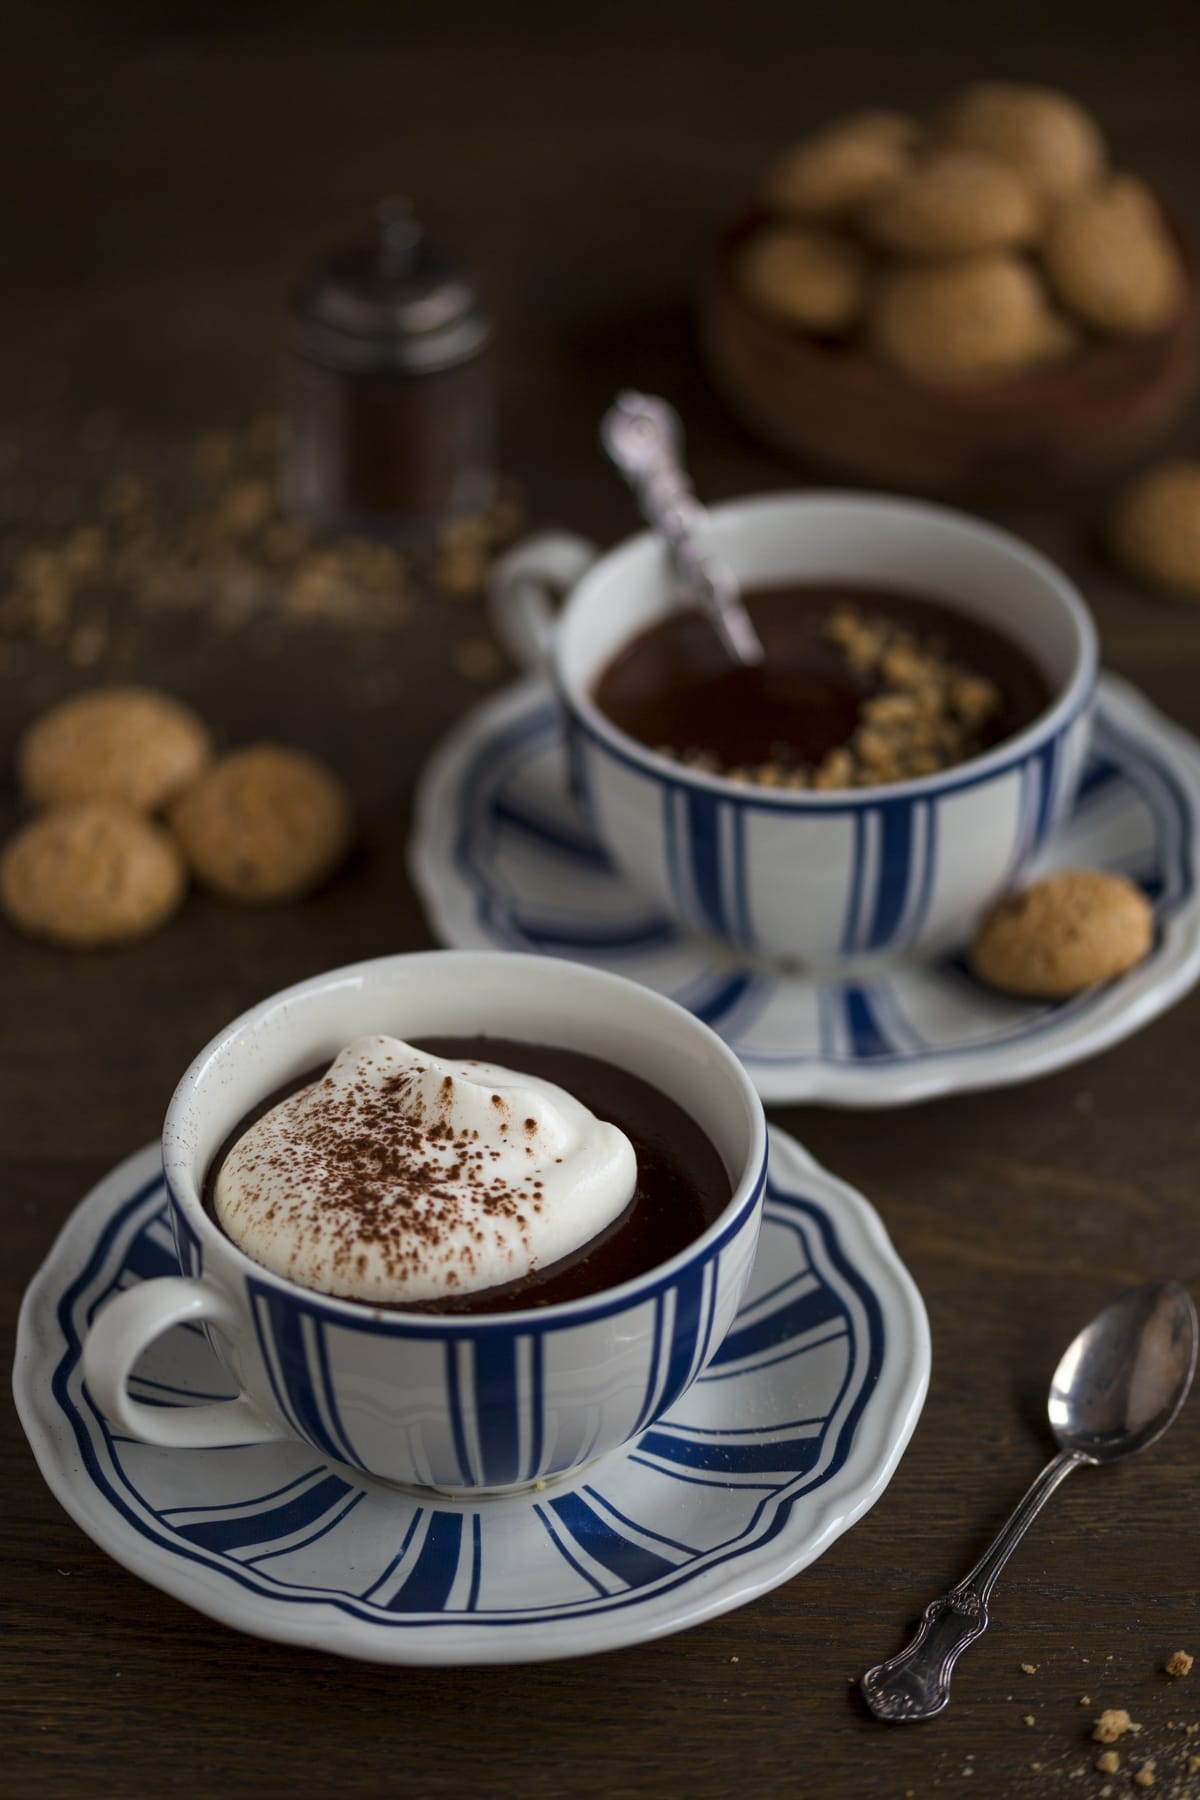 Italian hot chocolate topped with whipped cream or crushed cookies.